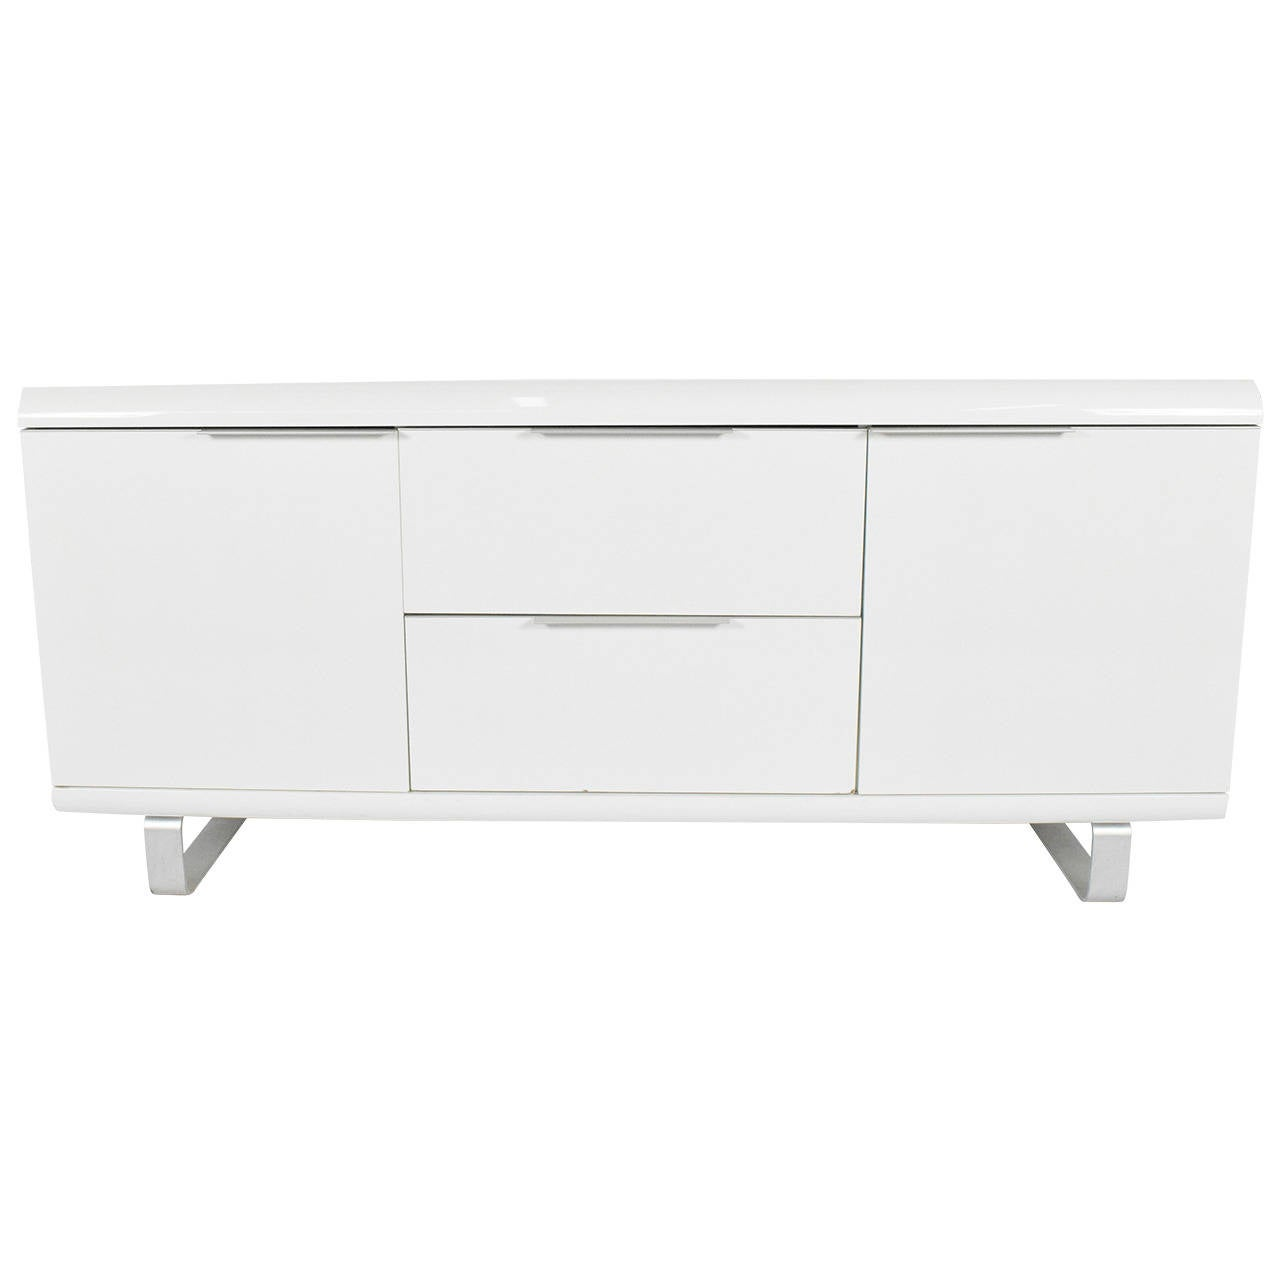 Saporiti Sideboard in White Lacquer with Chrome Legs